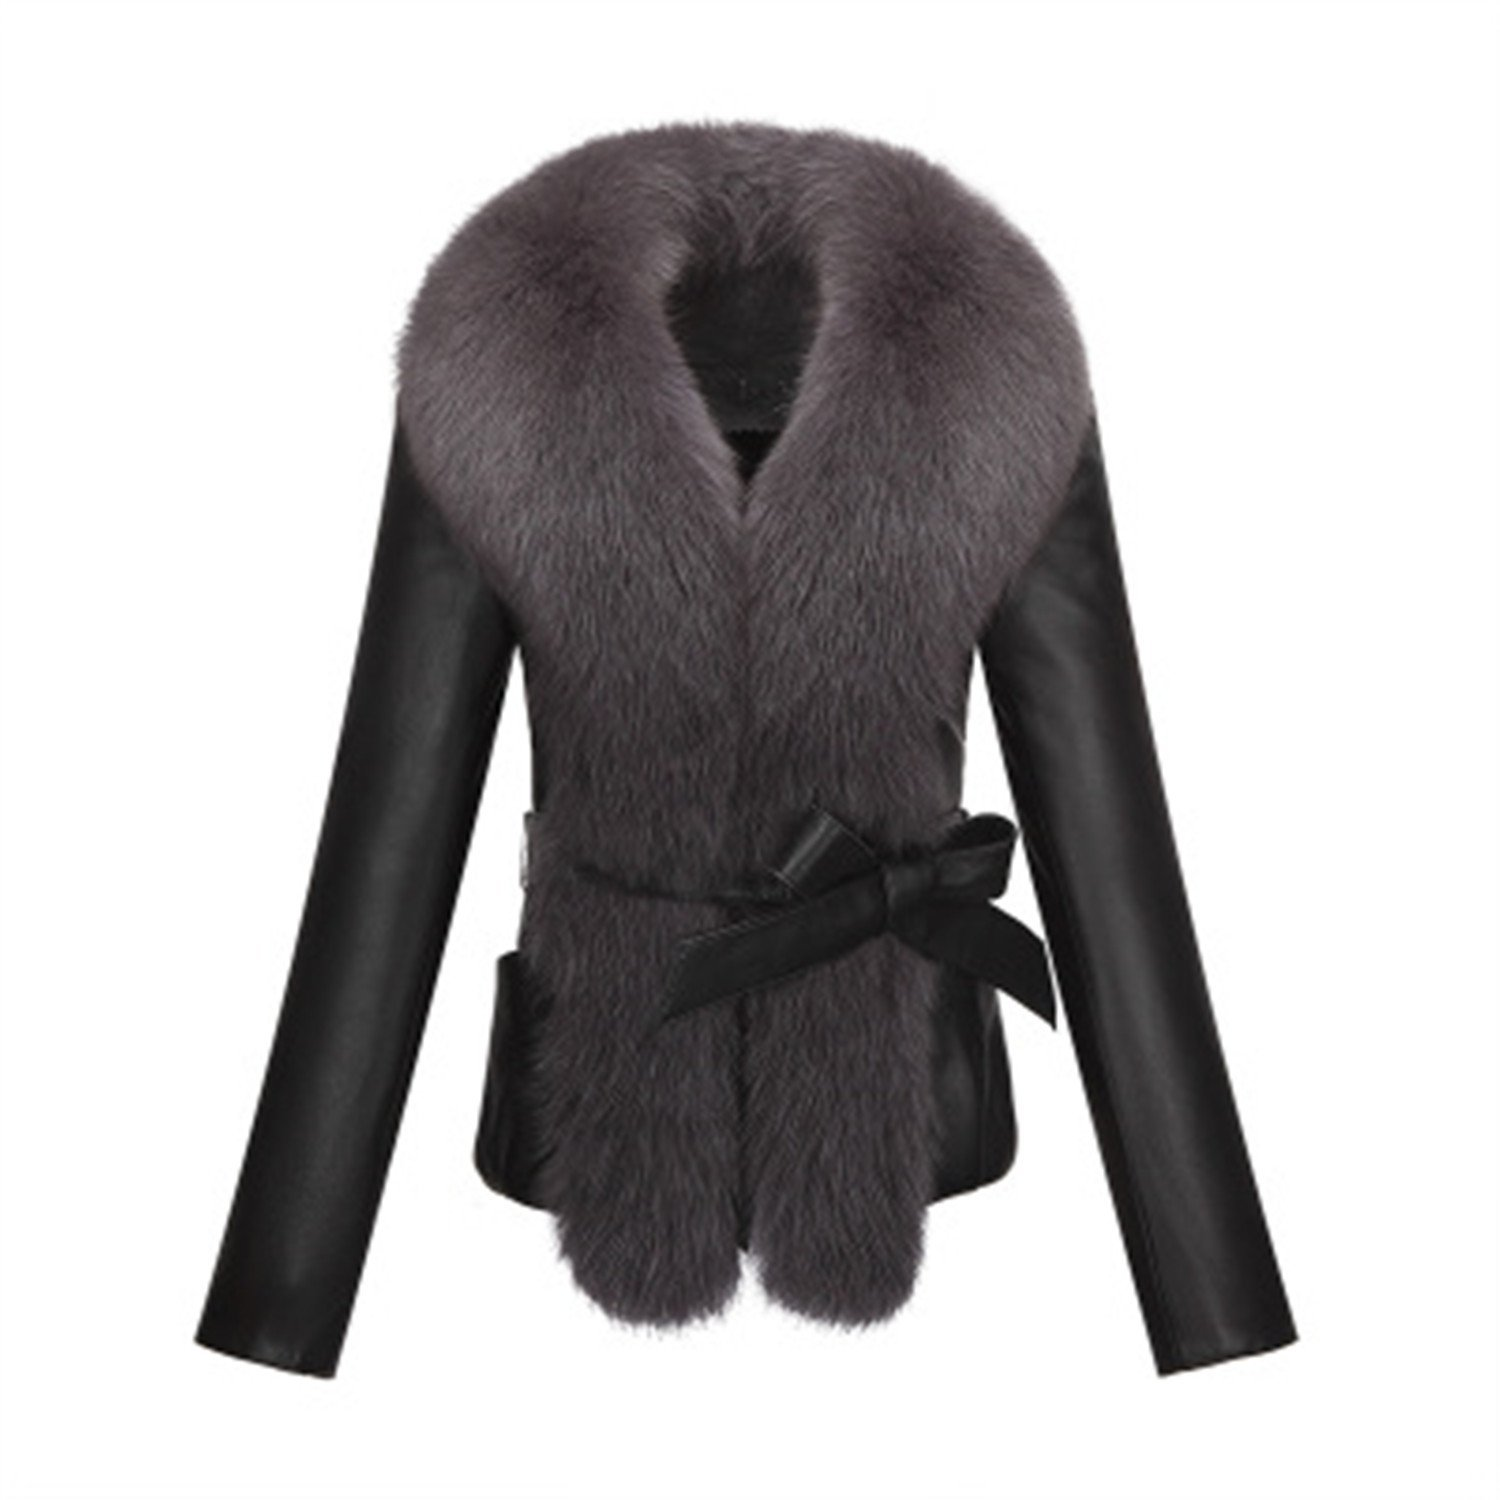 665e6d6f0cac Get Quotations · Kongsta Sheep Pu Leather Fox Fur Collar Slim Long-Sleeved Short  Jacket Jacket Fur Collar